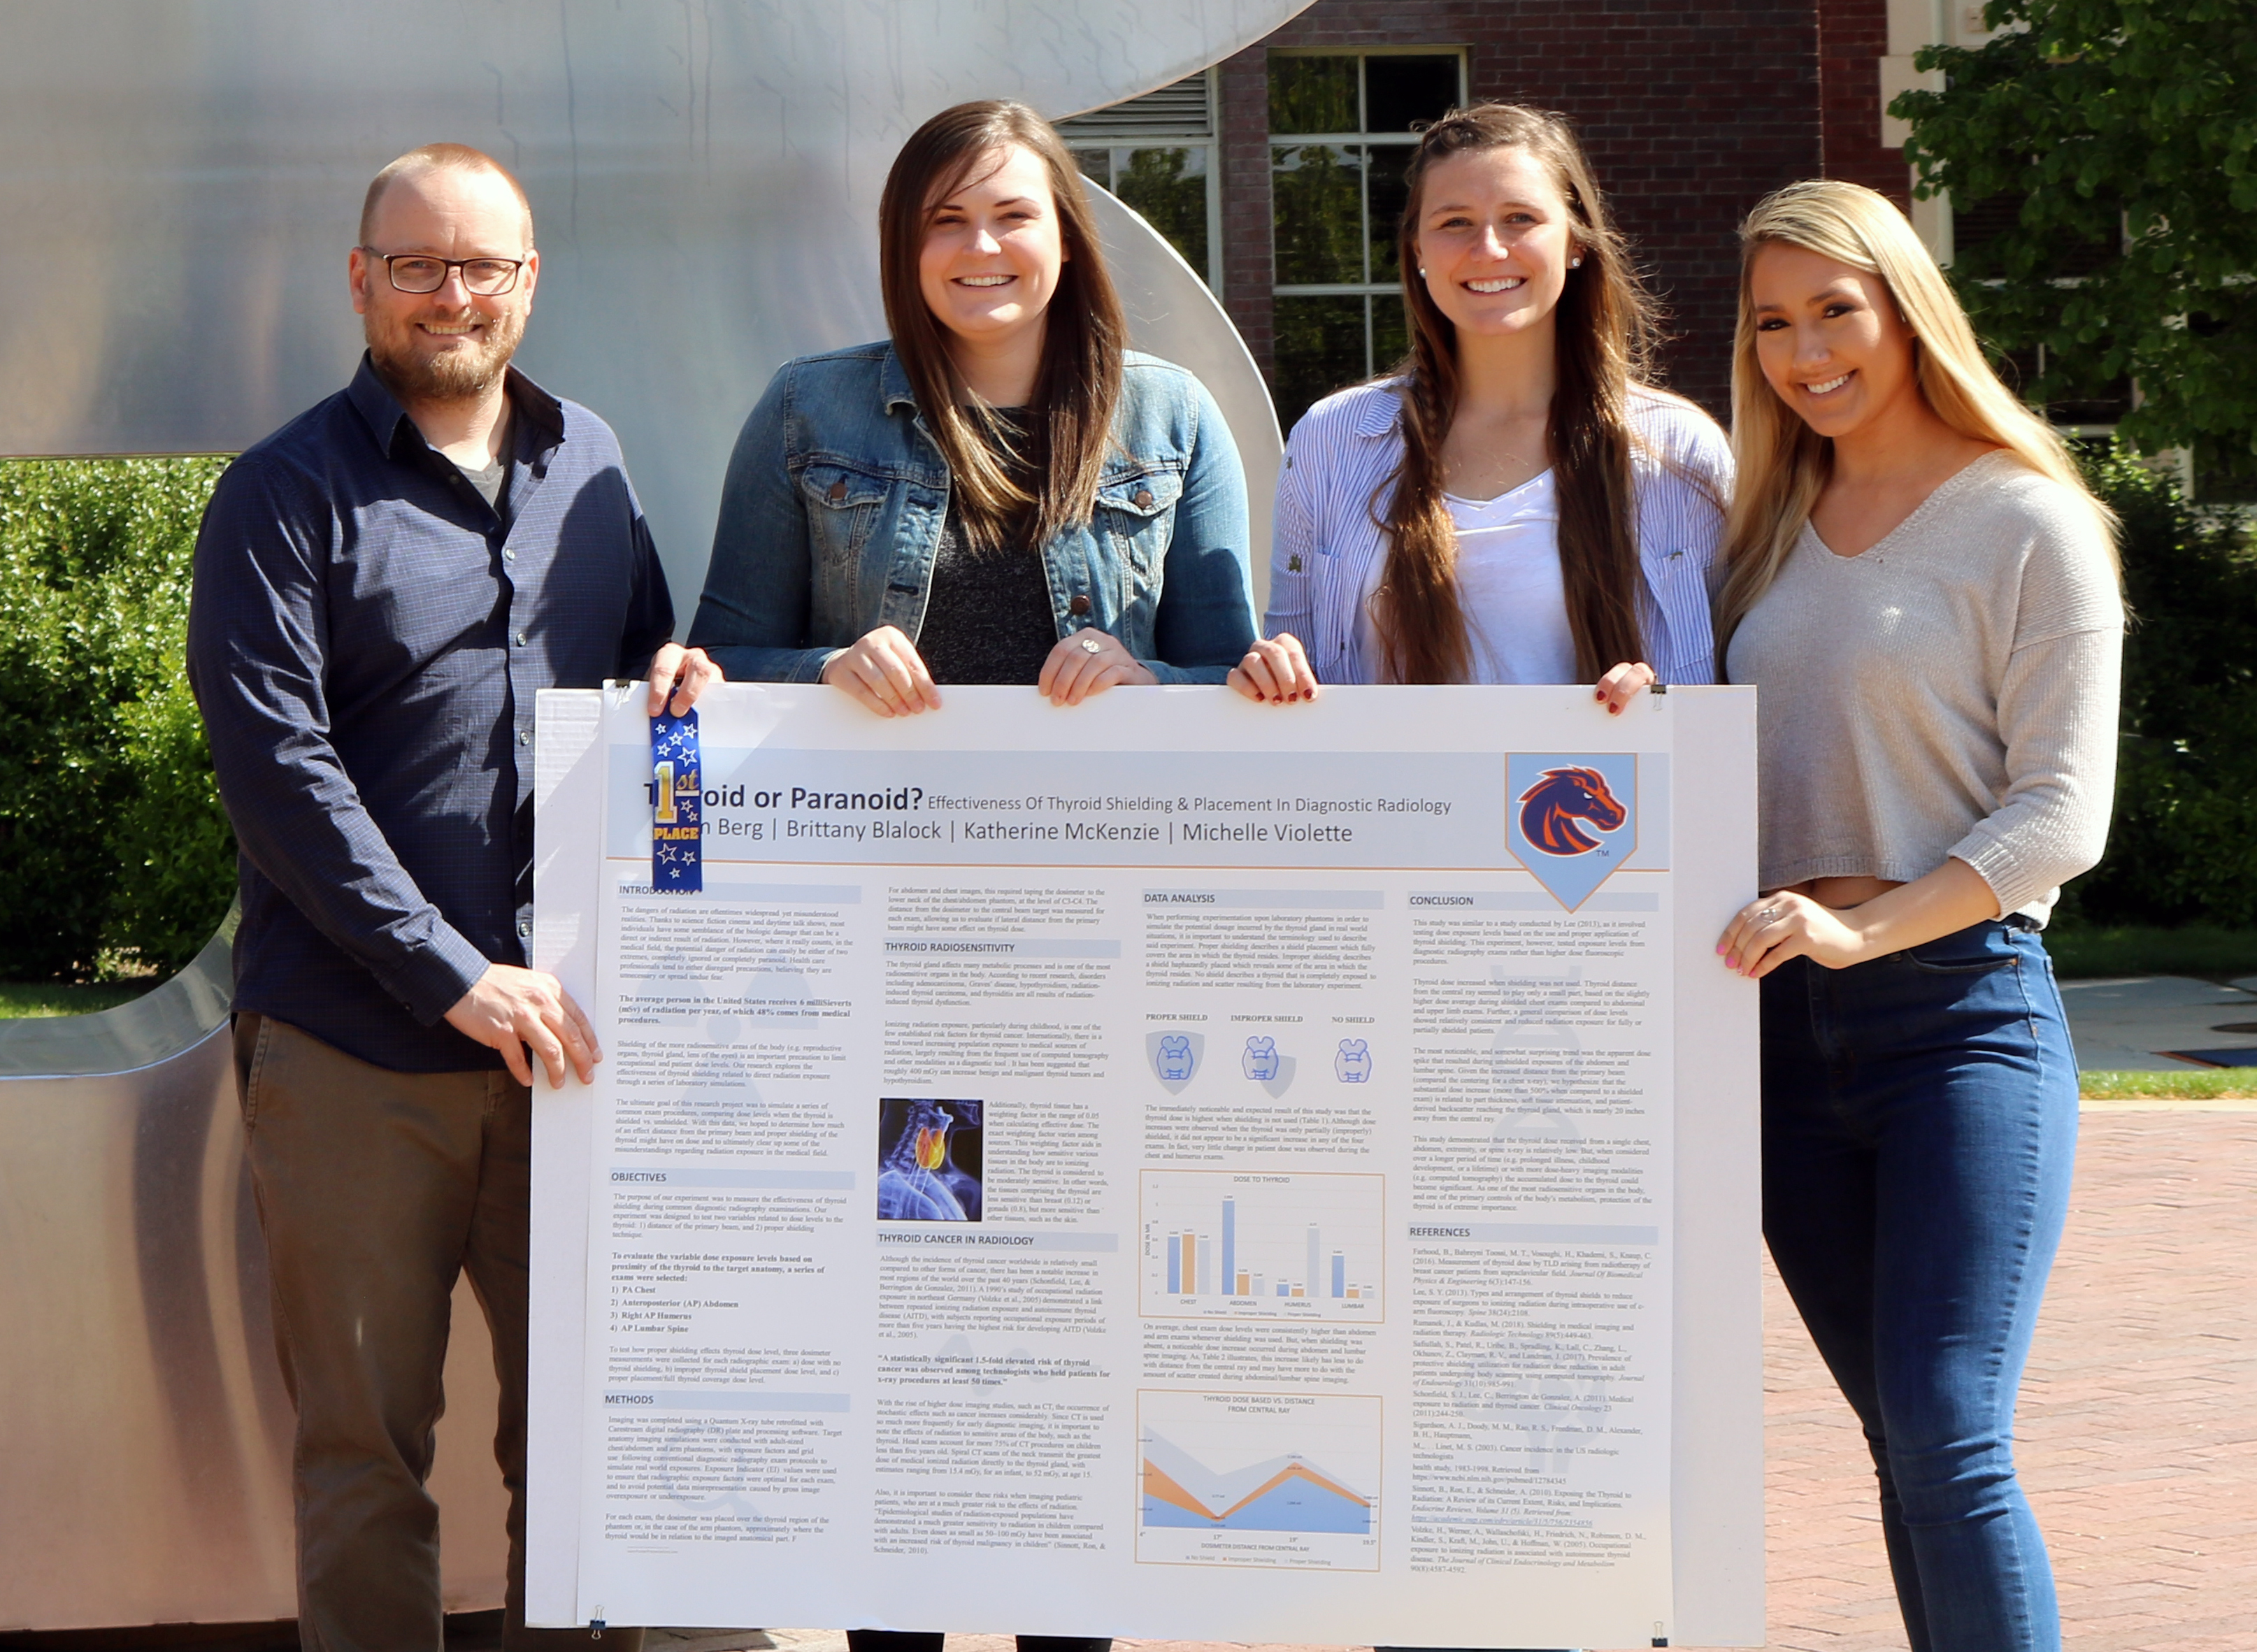 Students who won first place with their poster